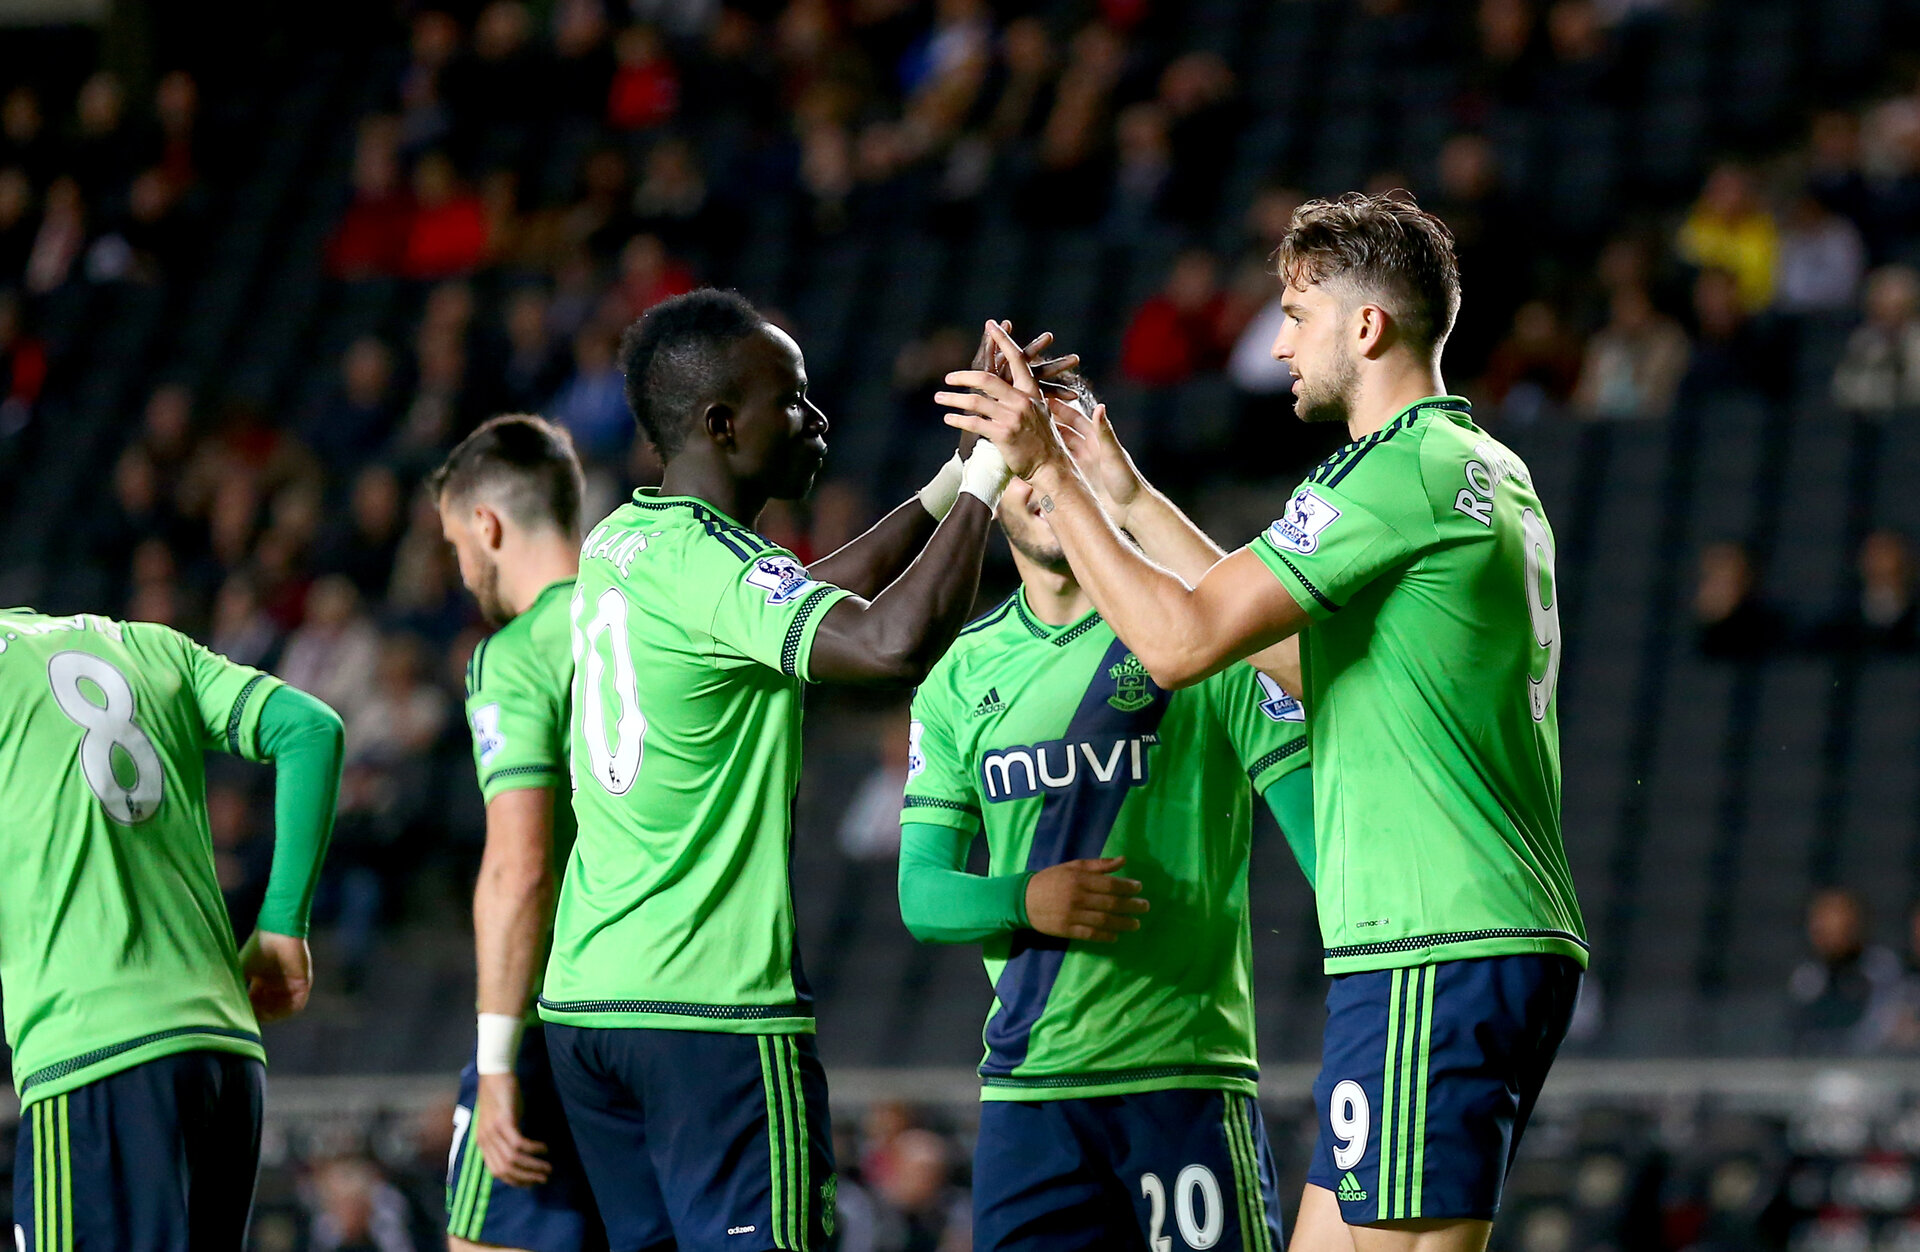 Jay rodriguez celebrates his goal during the Capital One Cup match between Milton Keynes Dons and Southampton at stadium:mk, Milton Keynes, England on 23 September 2015.